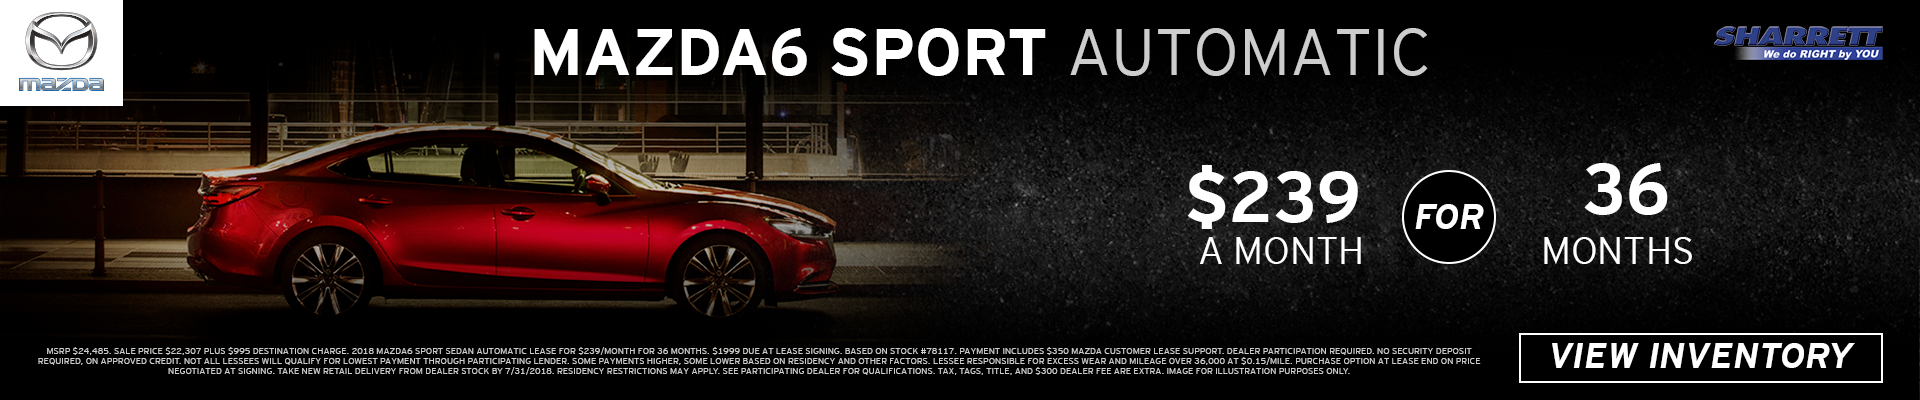 Lease a 2018 Mazda6 Sport for $239/mo for 36 months